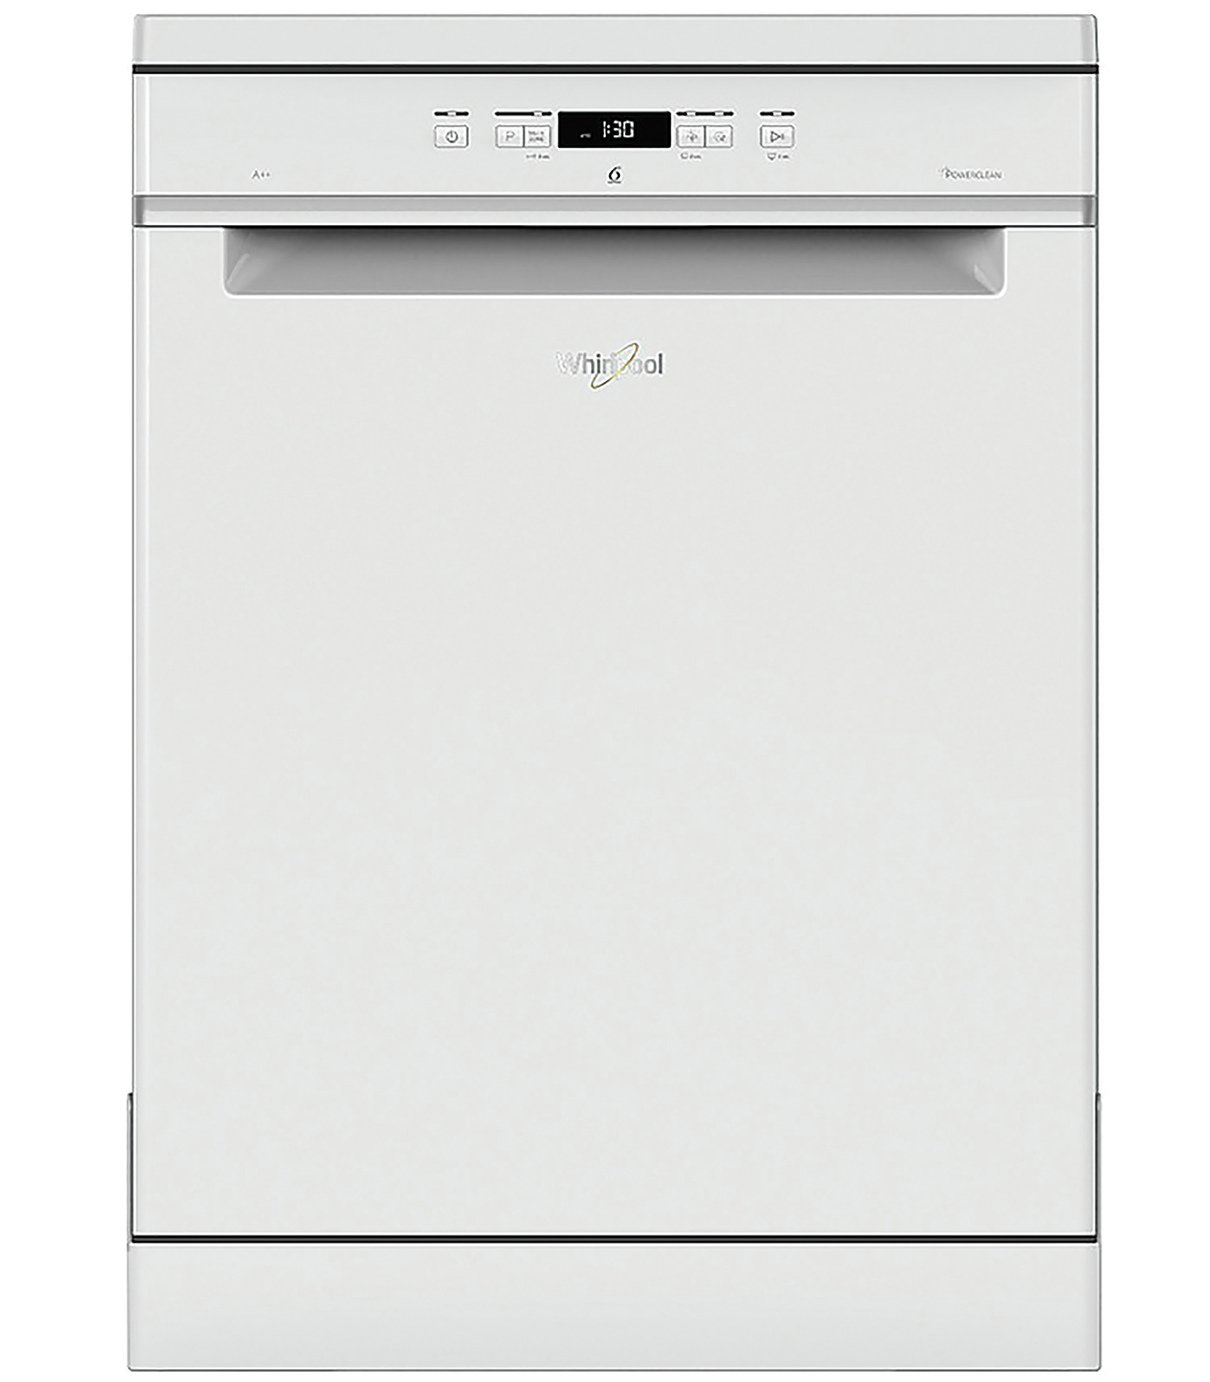 Whirlpool WFC3C24P Full Size Dishwasher - White